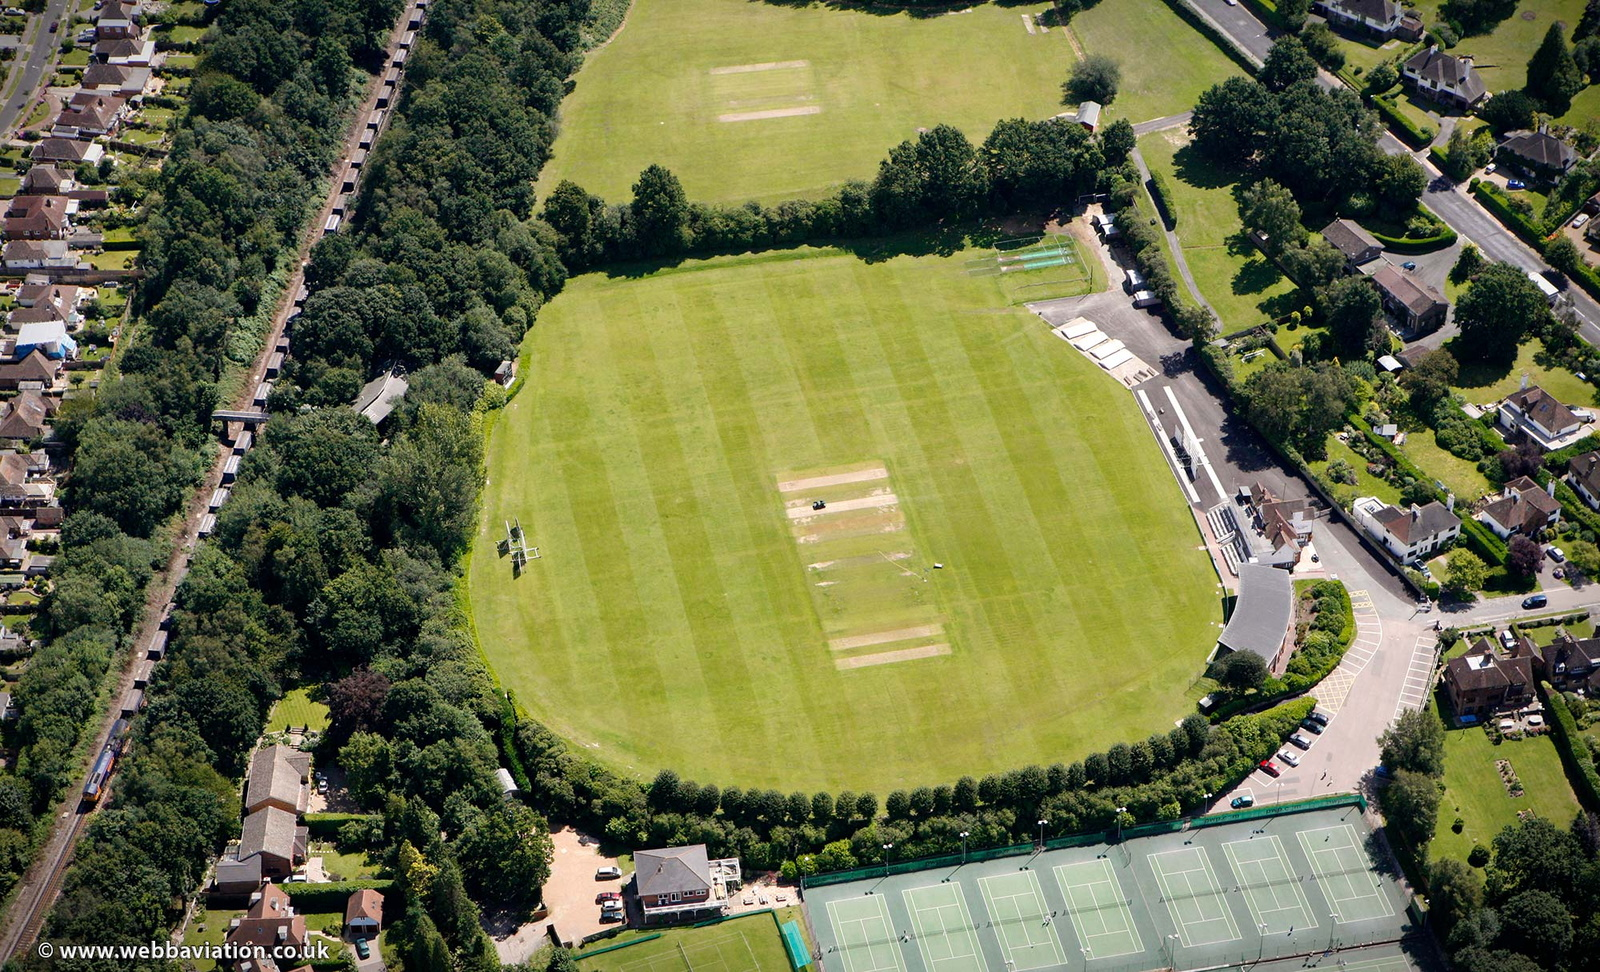 The Nevill Ground Tunbridge Wells  from the air